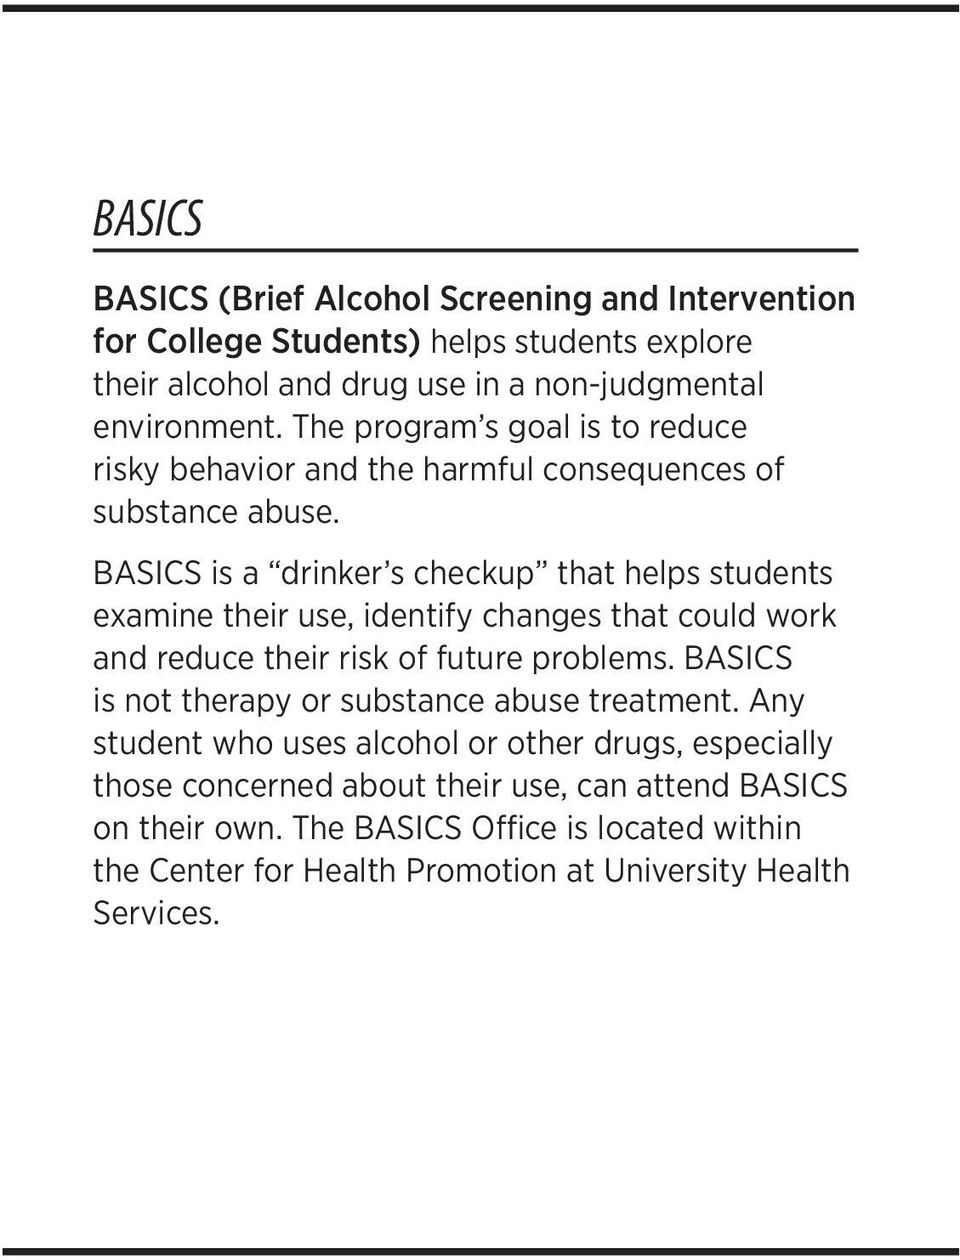 BASICS is a drinker s checkup that helps students examine their use, identify changes that could work and reduce their risk of future problems.